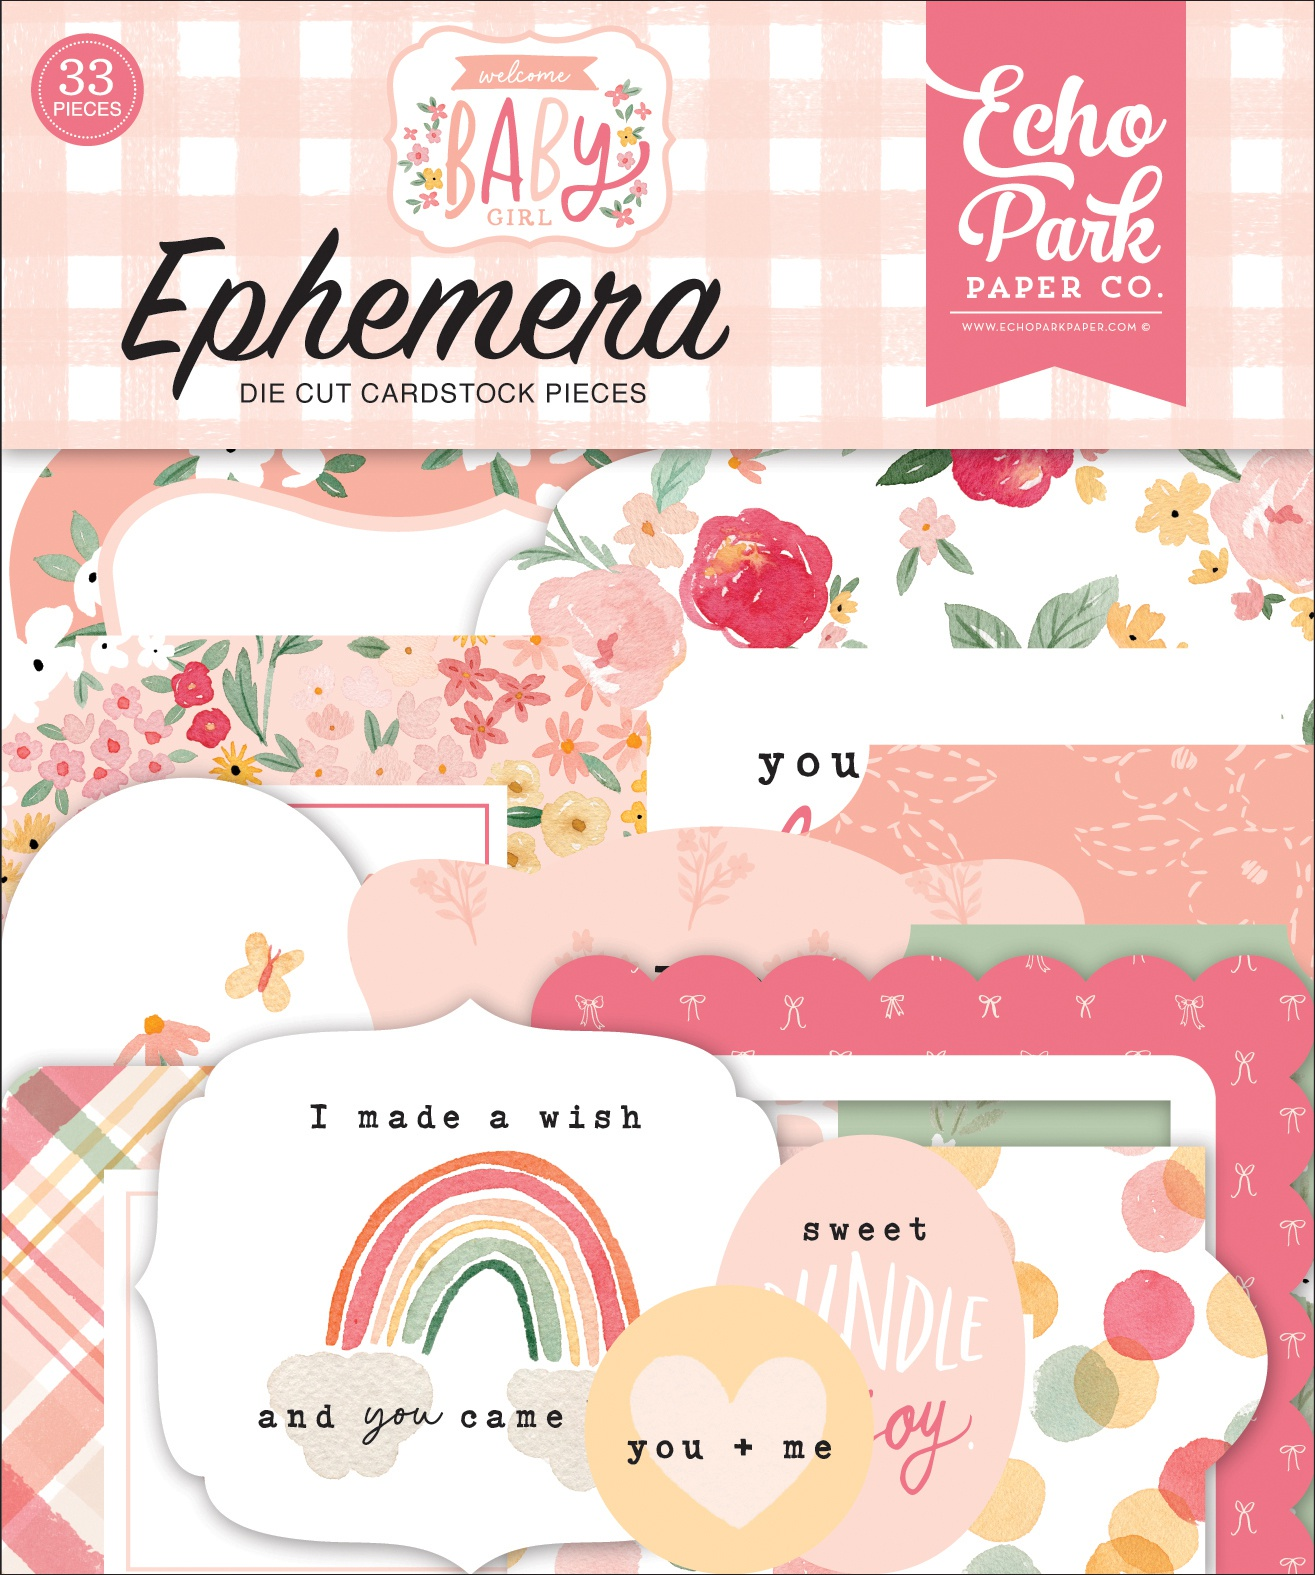 Echo Park Cardstock Ephemera 33/Pkg-Icons, Welcome Baby Girl